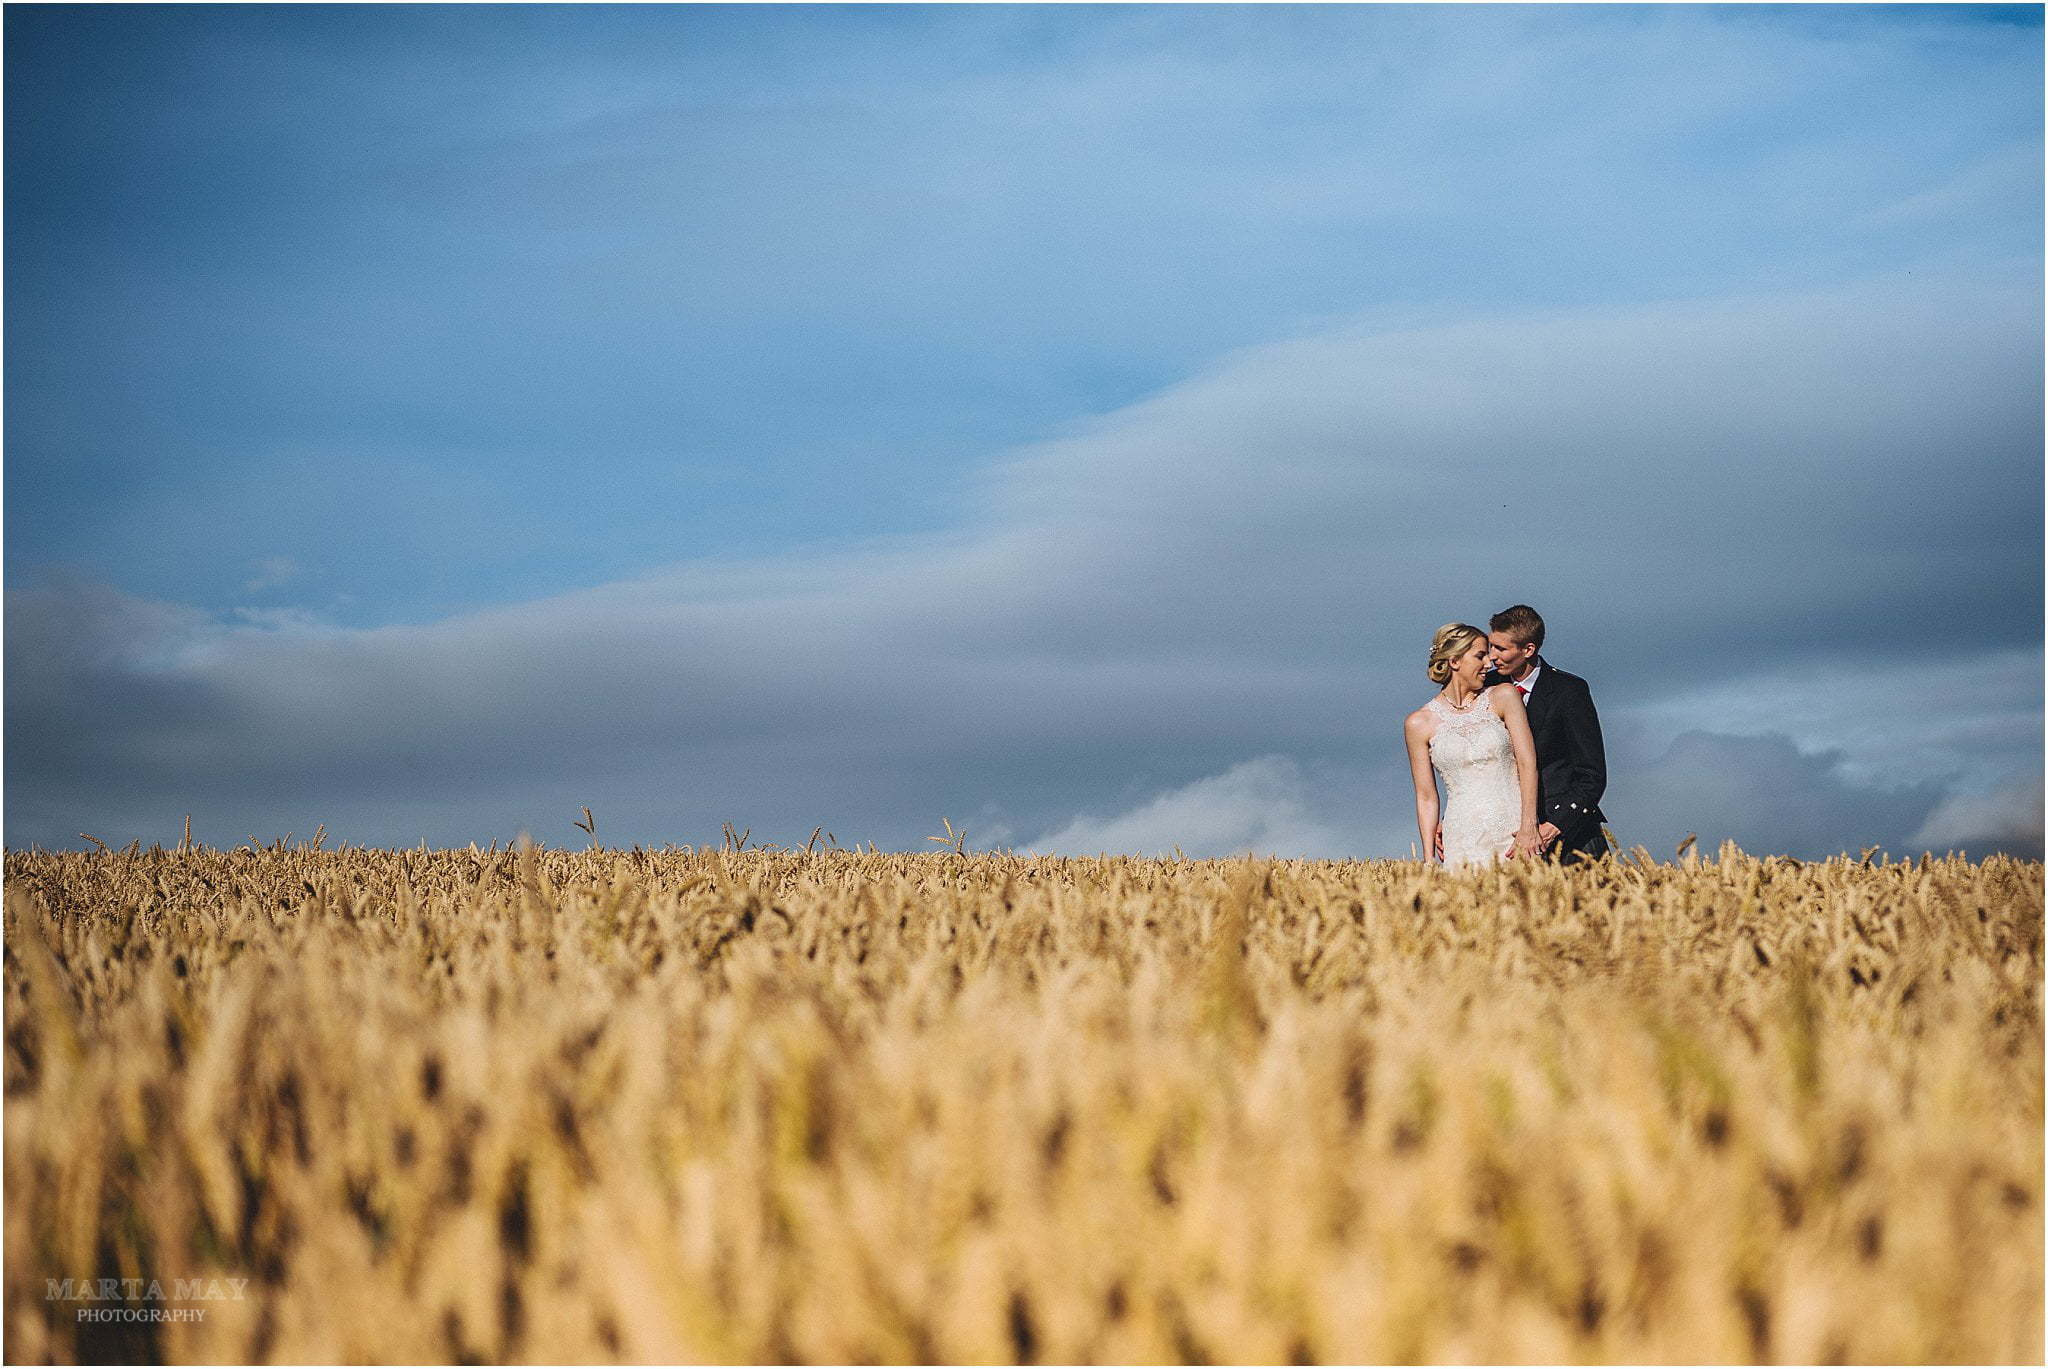 Hereford wedding photographer blog